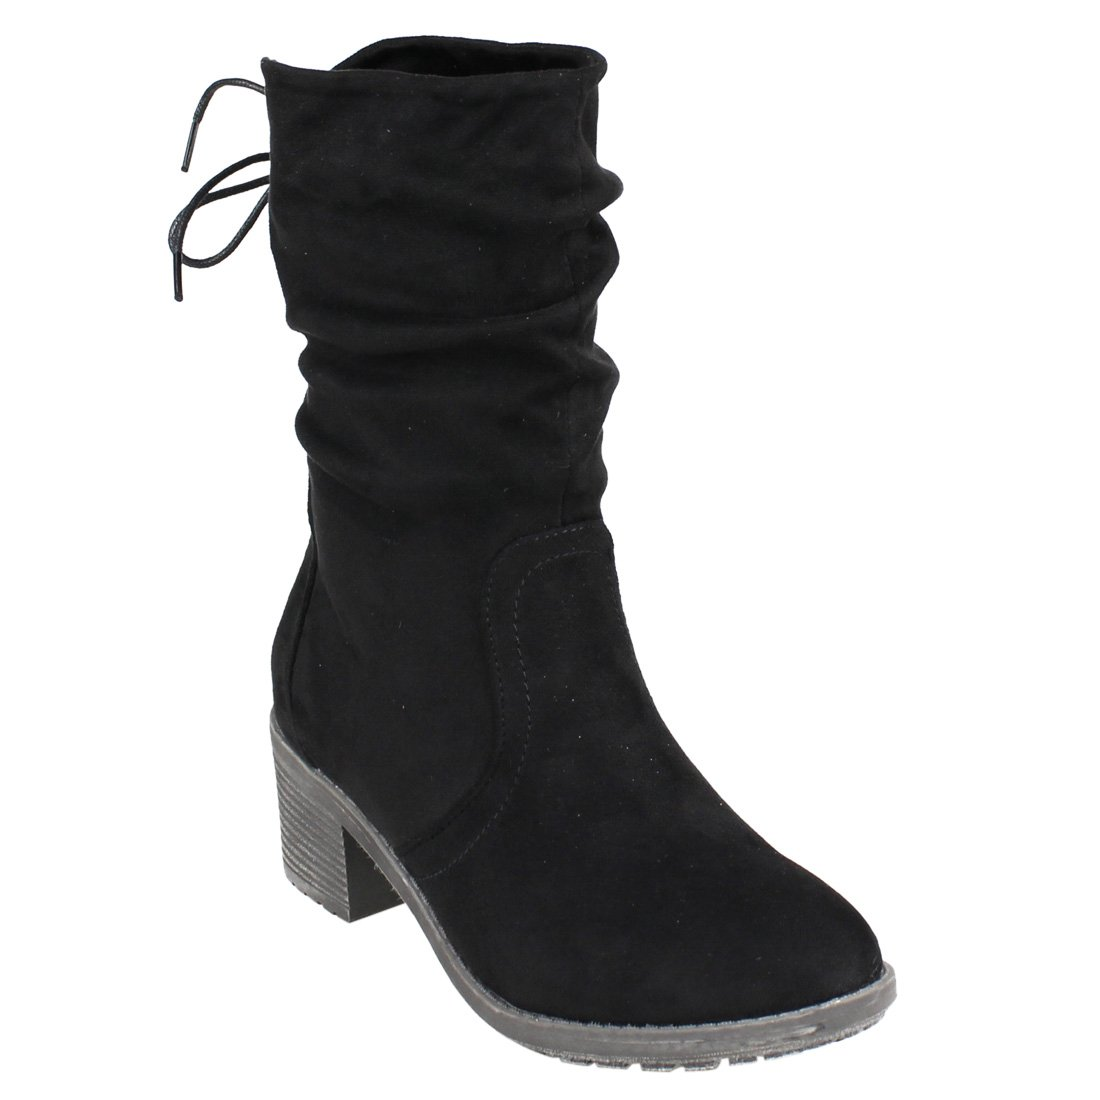 9687c0507ae BESTON FM31 Women's Back Lace Side Zipper Stacked Heel Mid-Calf Slouchy  Boots